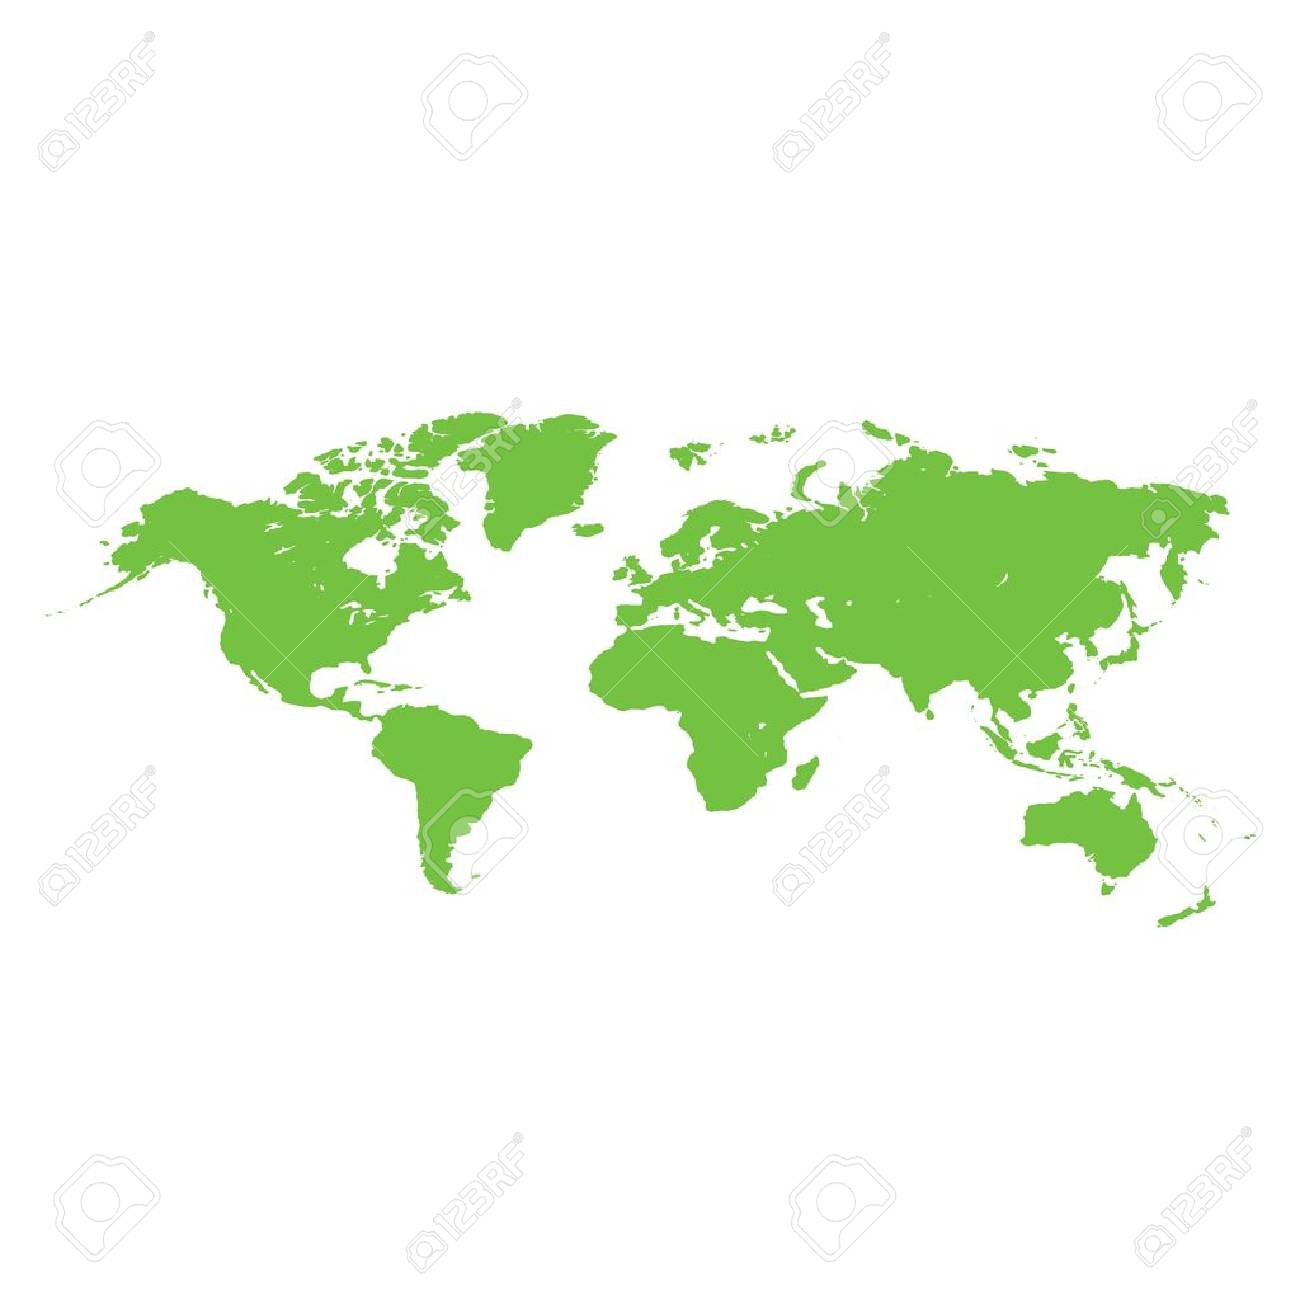 Simple green world map vector white background royalty free cliparts simple green world map vector white background stock vector 79629251 gumiabroncs Gallery